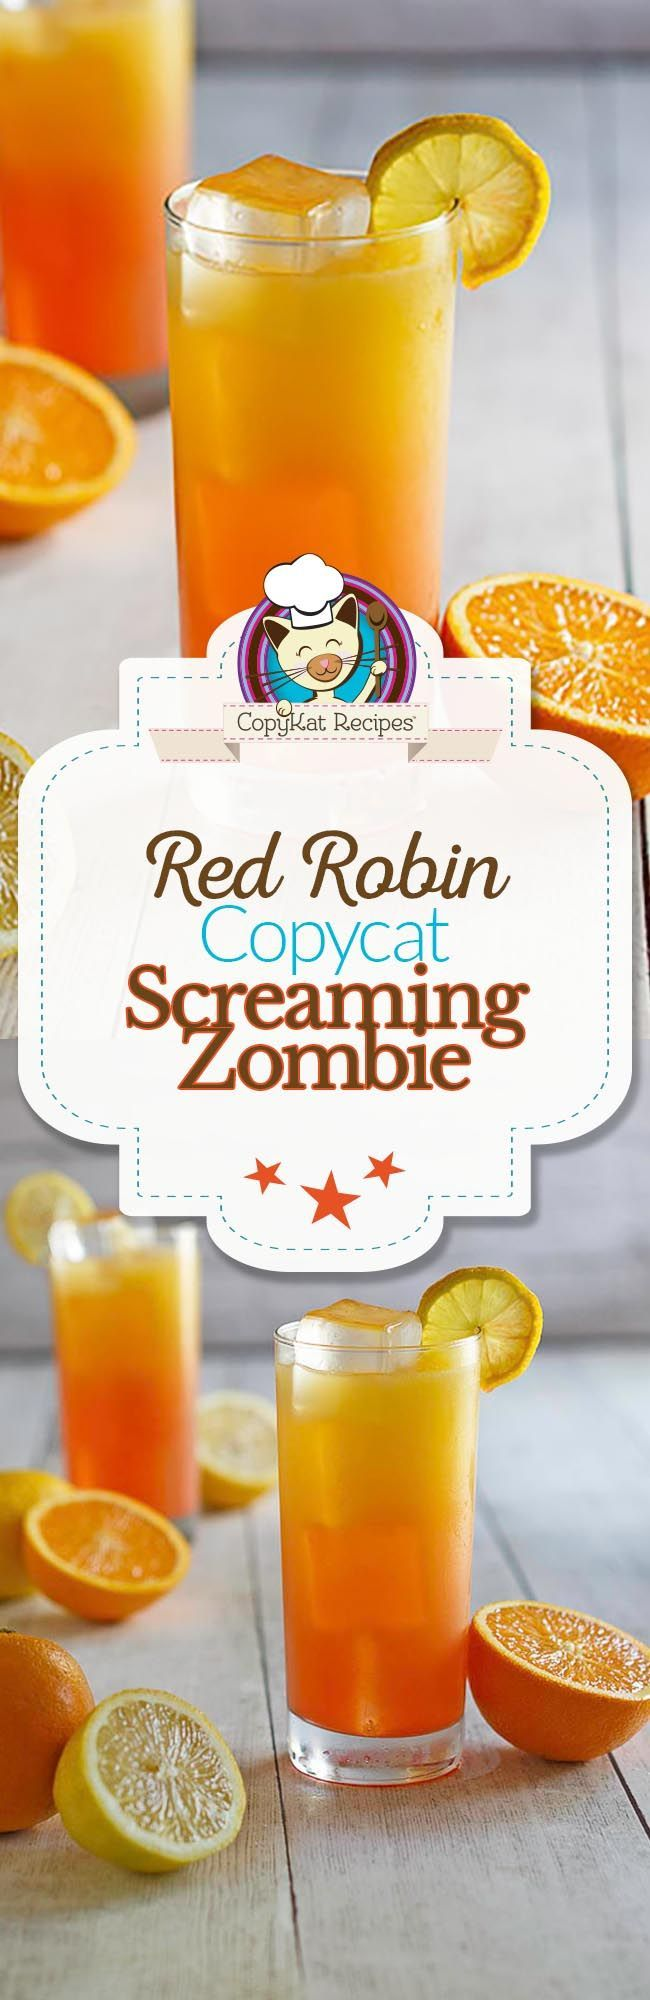 You can recreate the famous Red Robin Screaming Zombie drink at home with this easy copycat recipe.